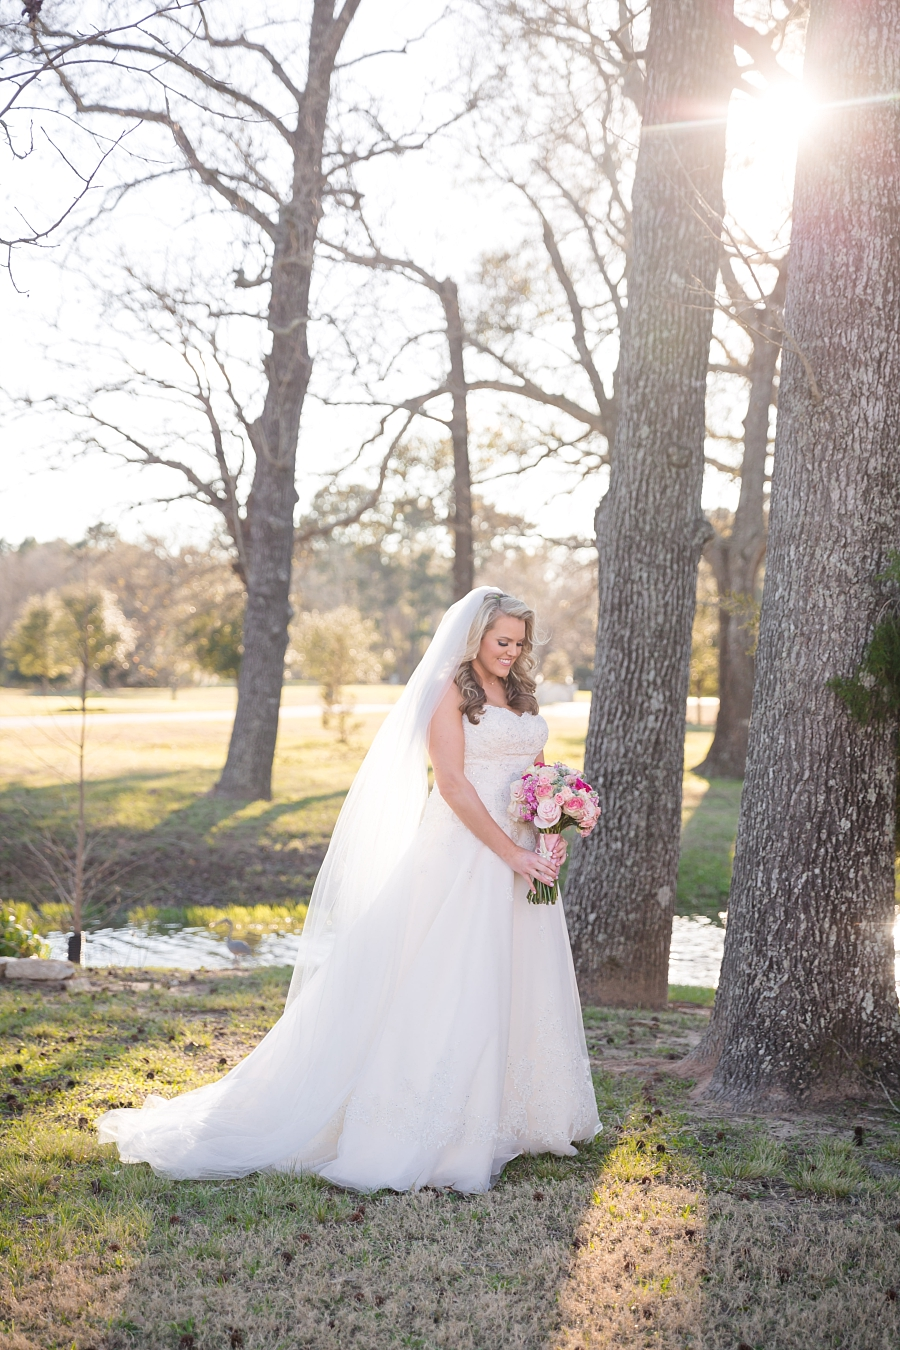 Stacy-Anderson-Photography-Balmorhea-Tomball-Wedding-Photographer_0009.jpg